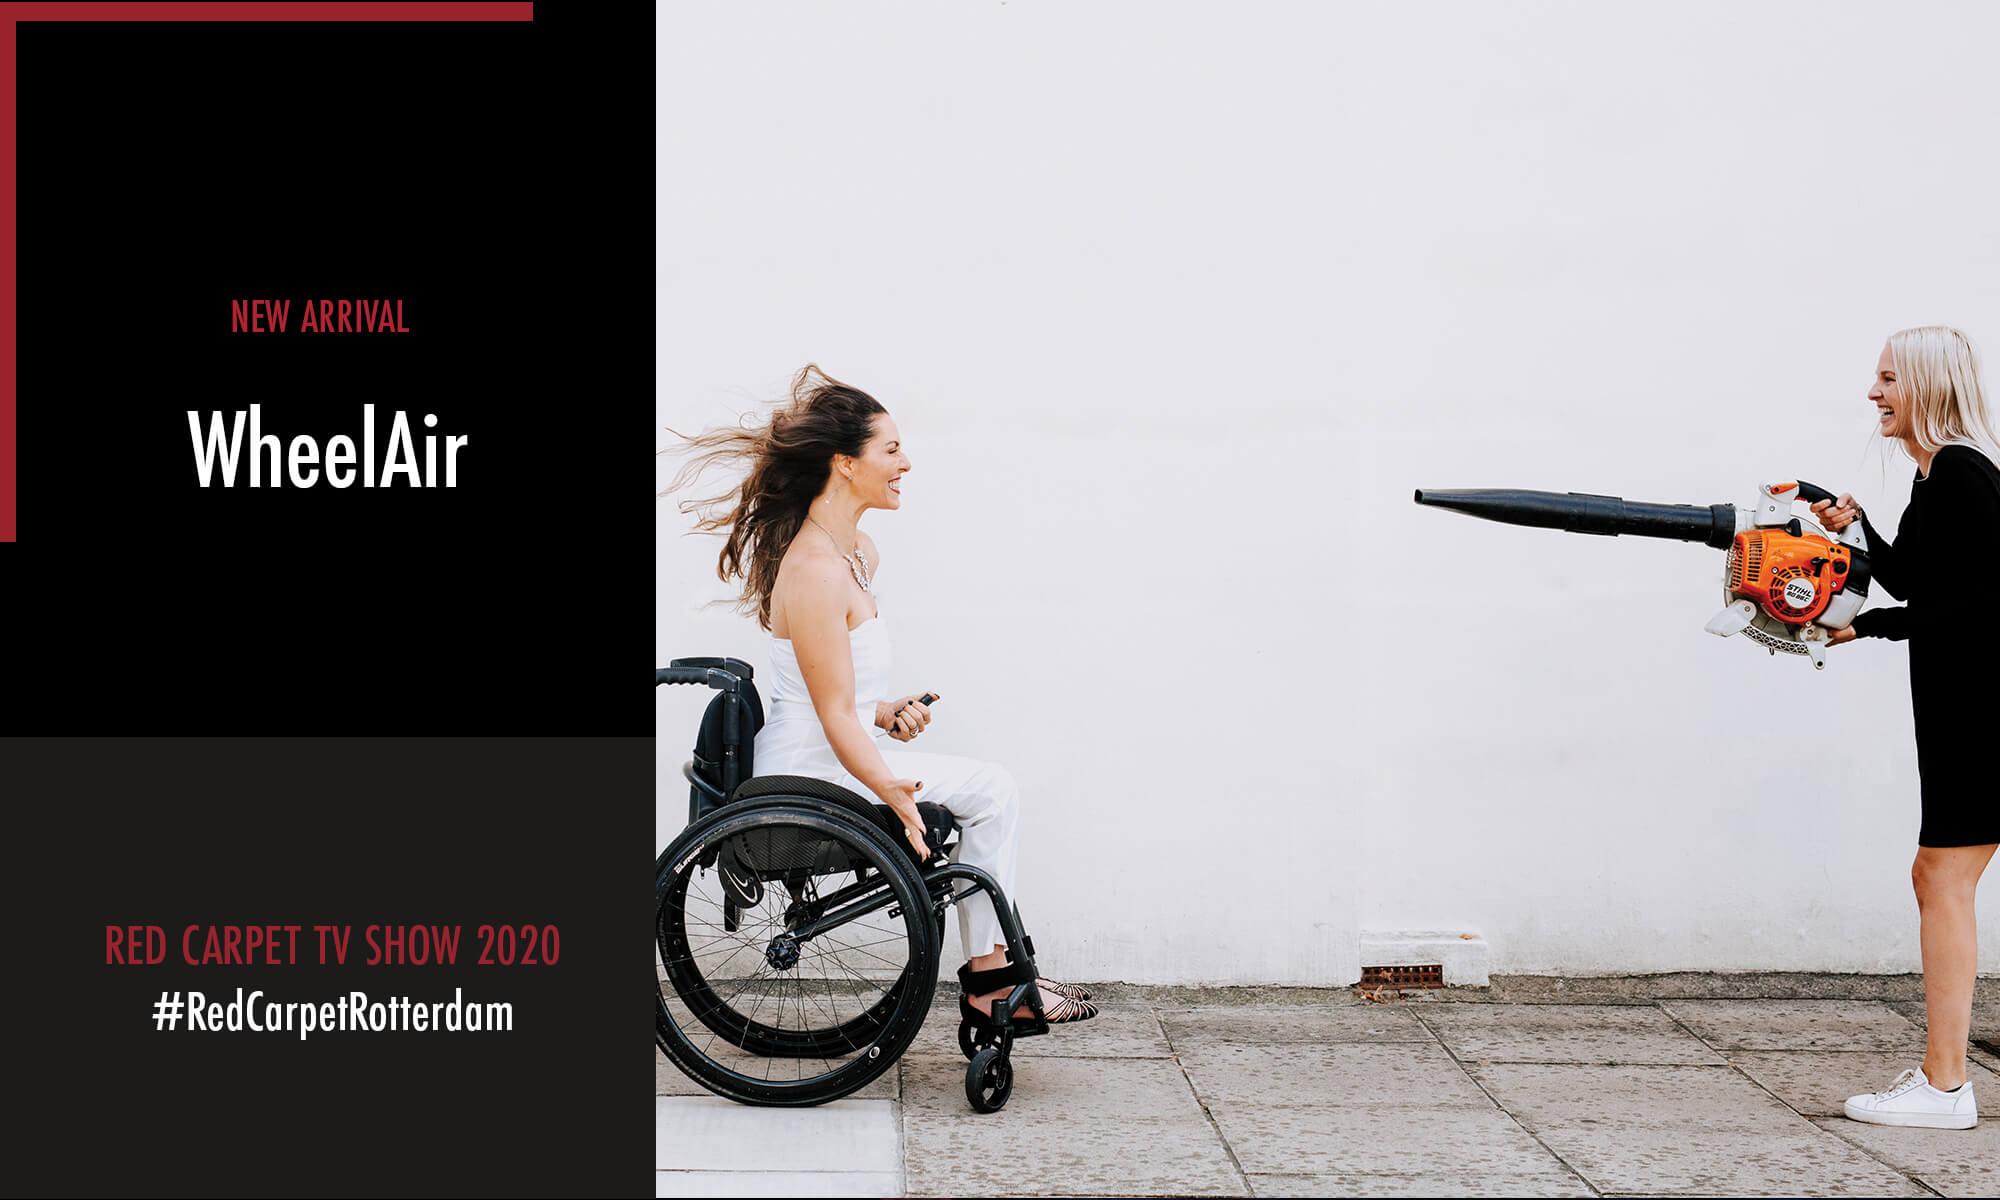 WheelAir is one of the new arrivals participating in the Red Carpet TV Show 2020